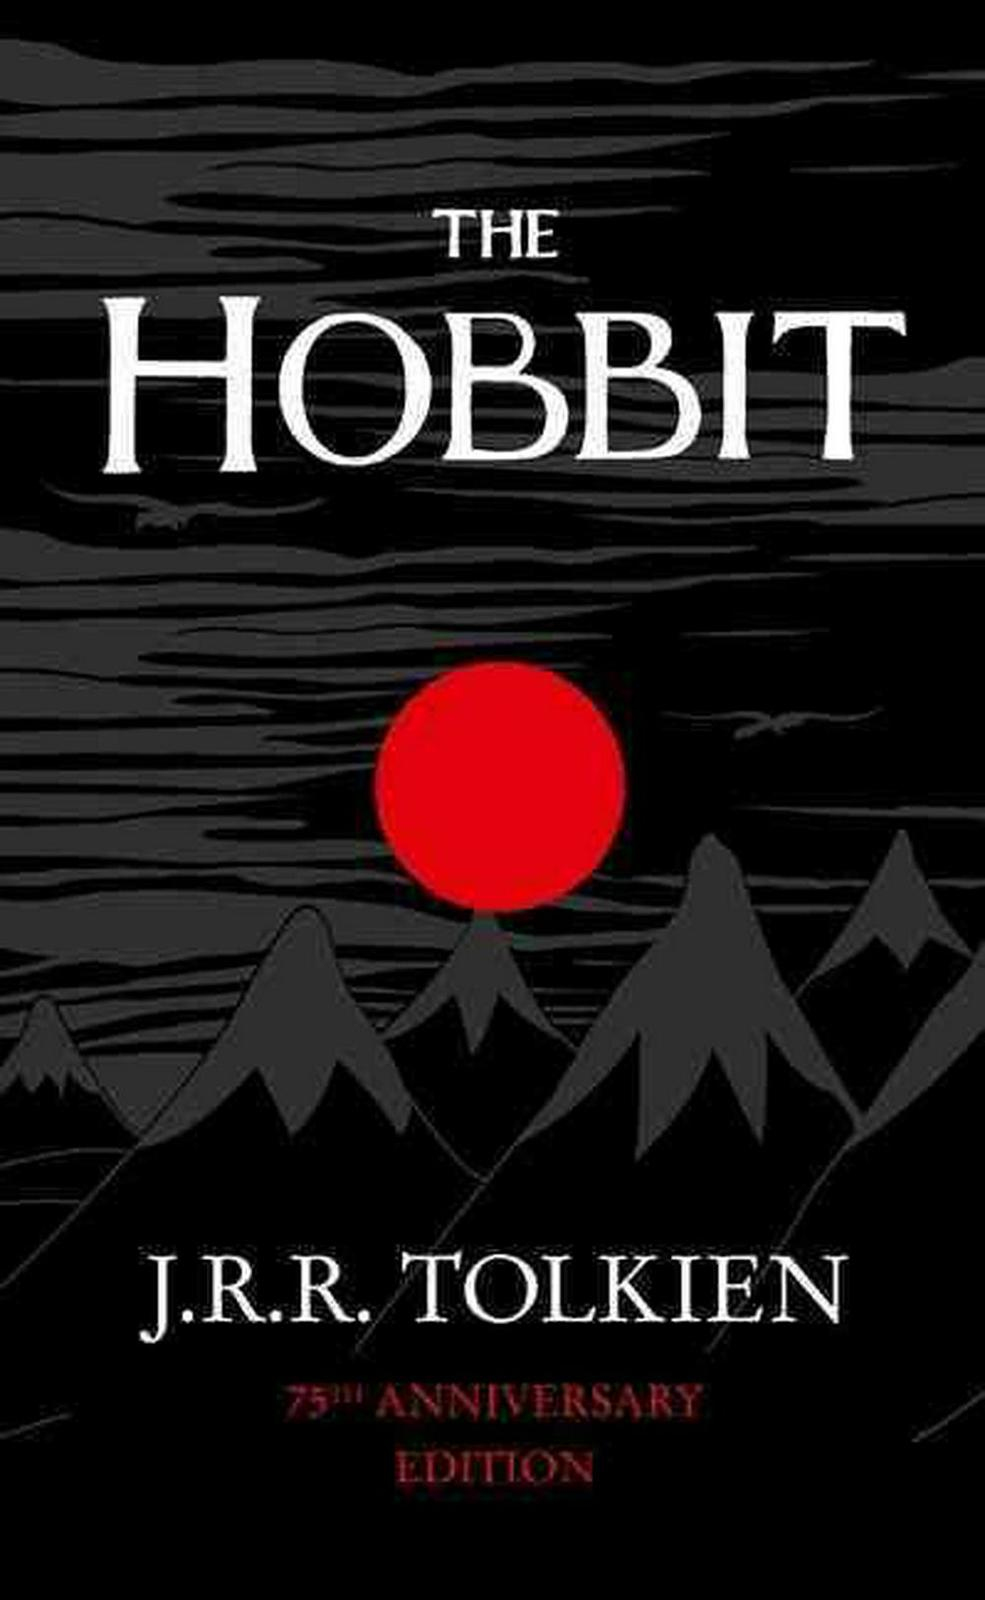 The Hobbit by J.R.R. Tolkien image